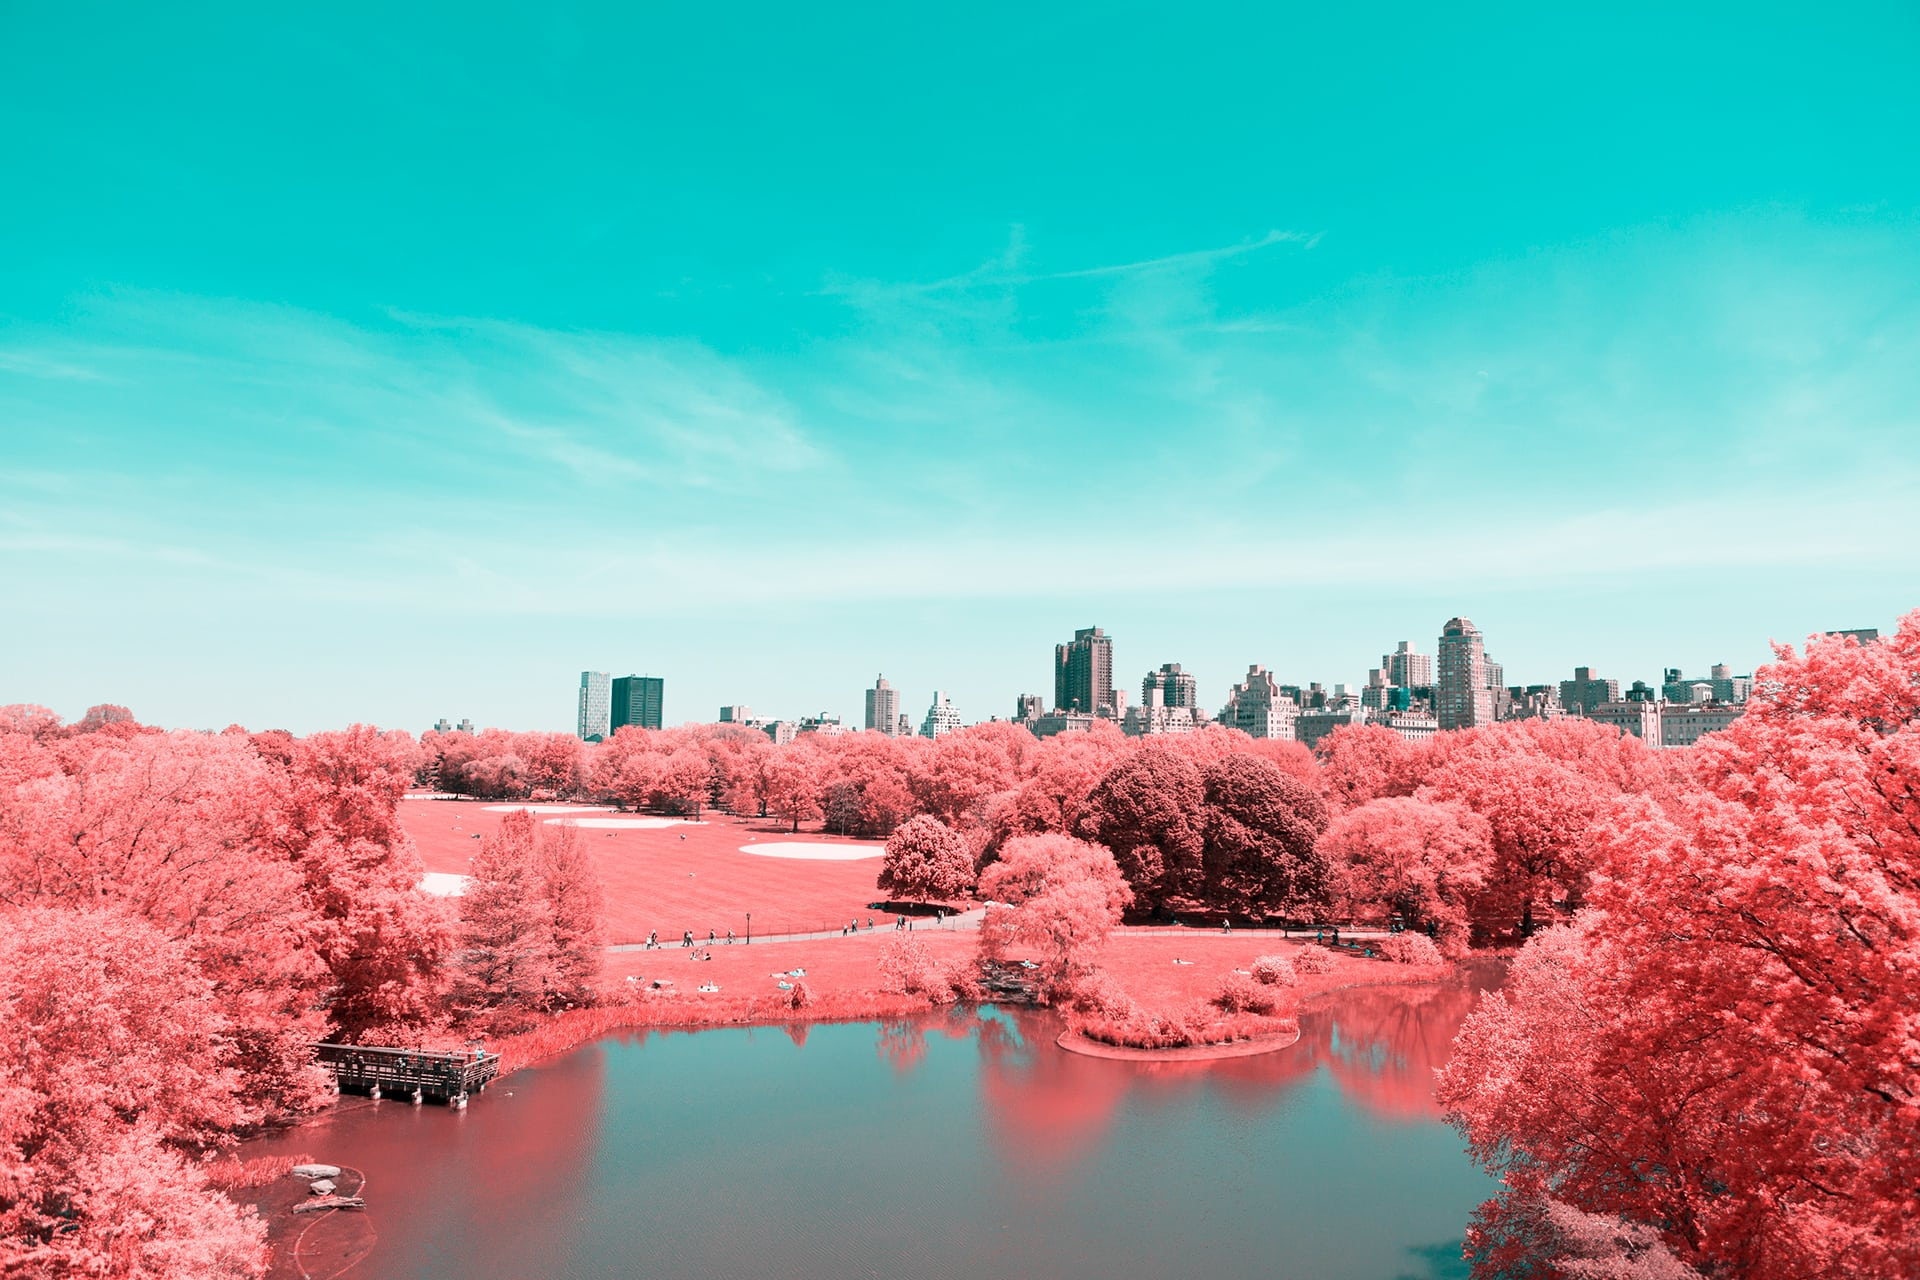 NYC Pink Central Park